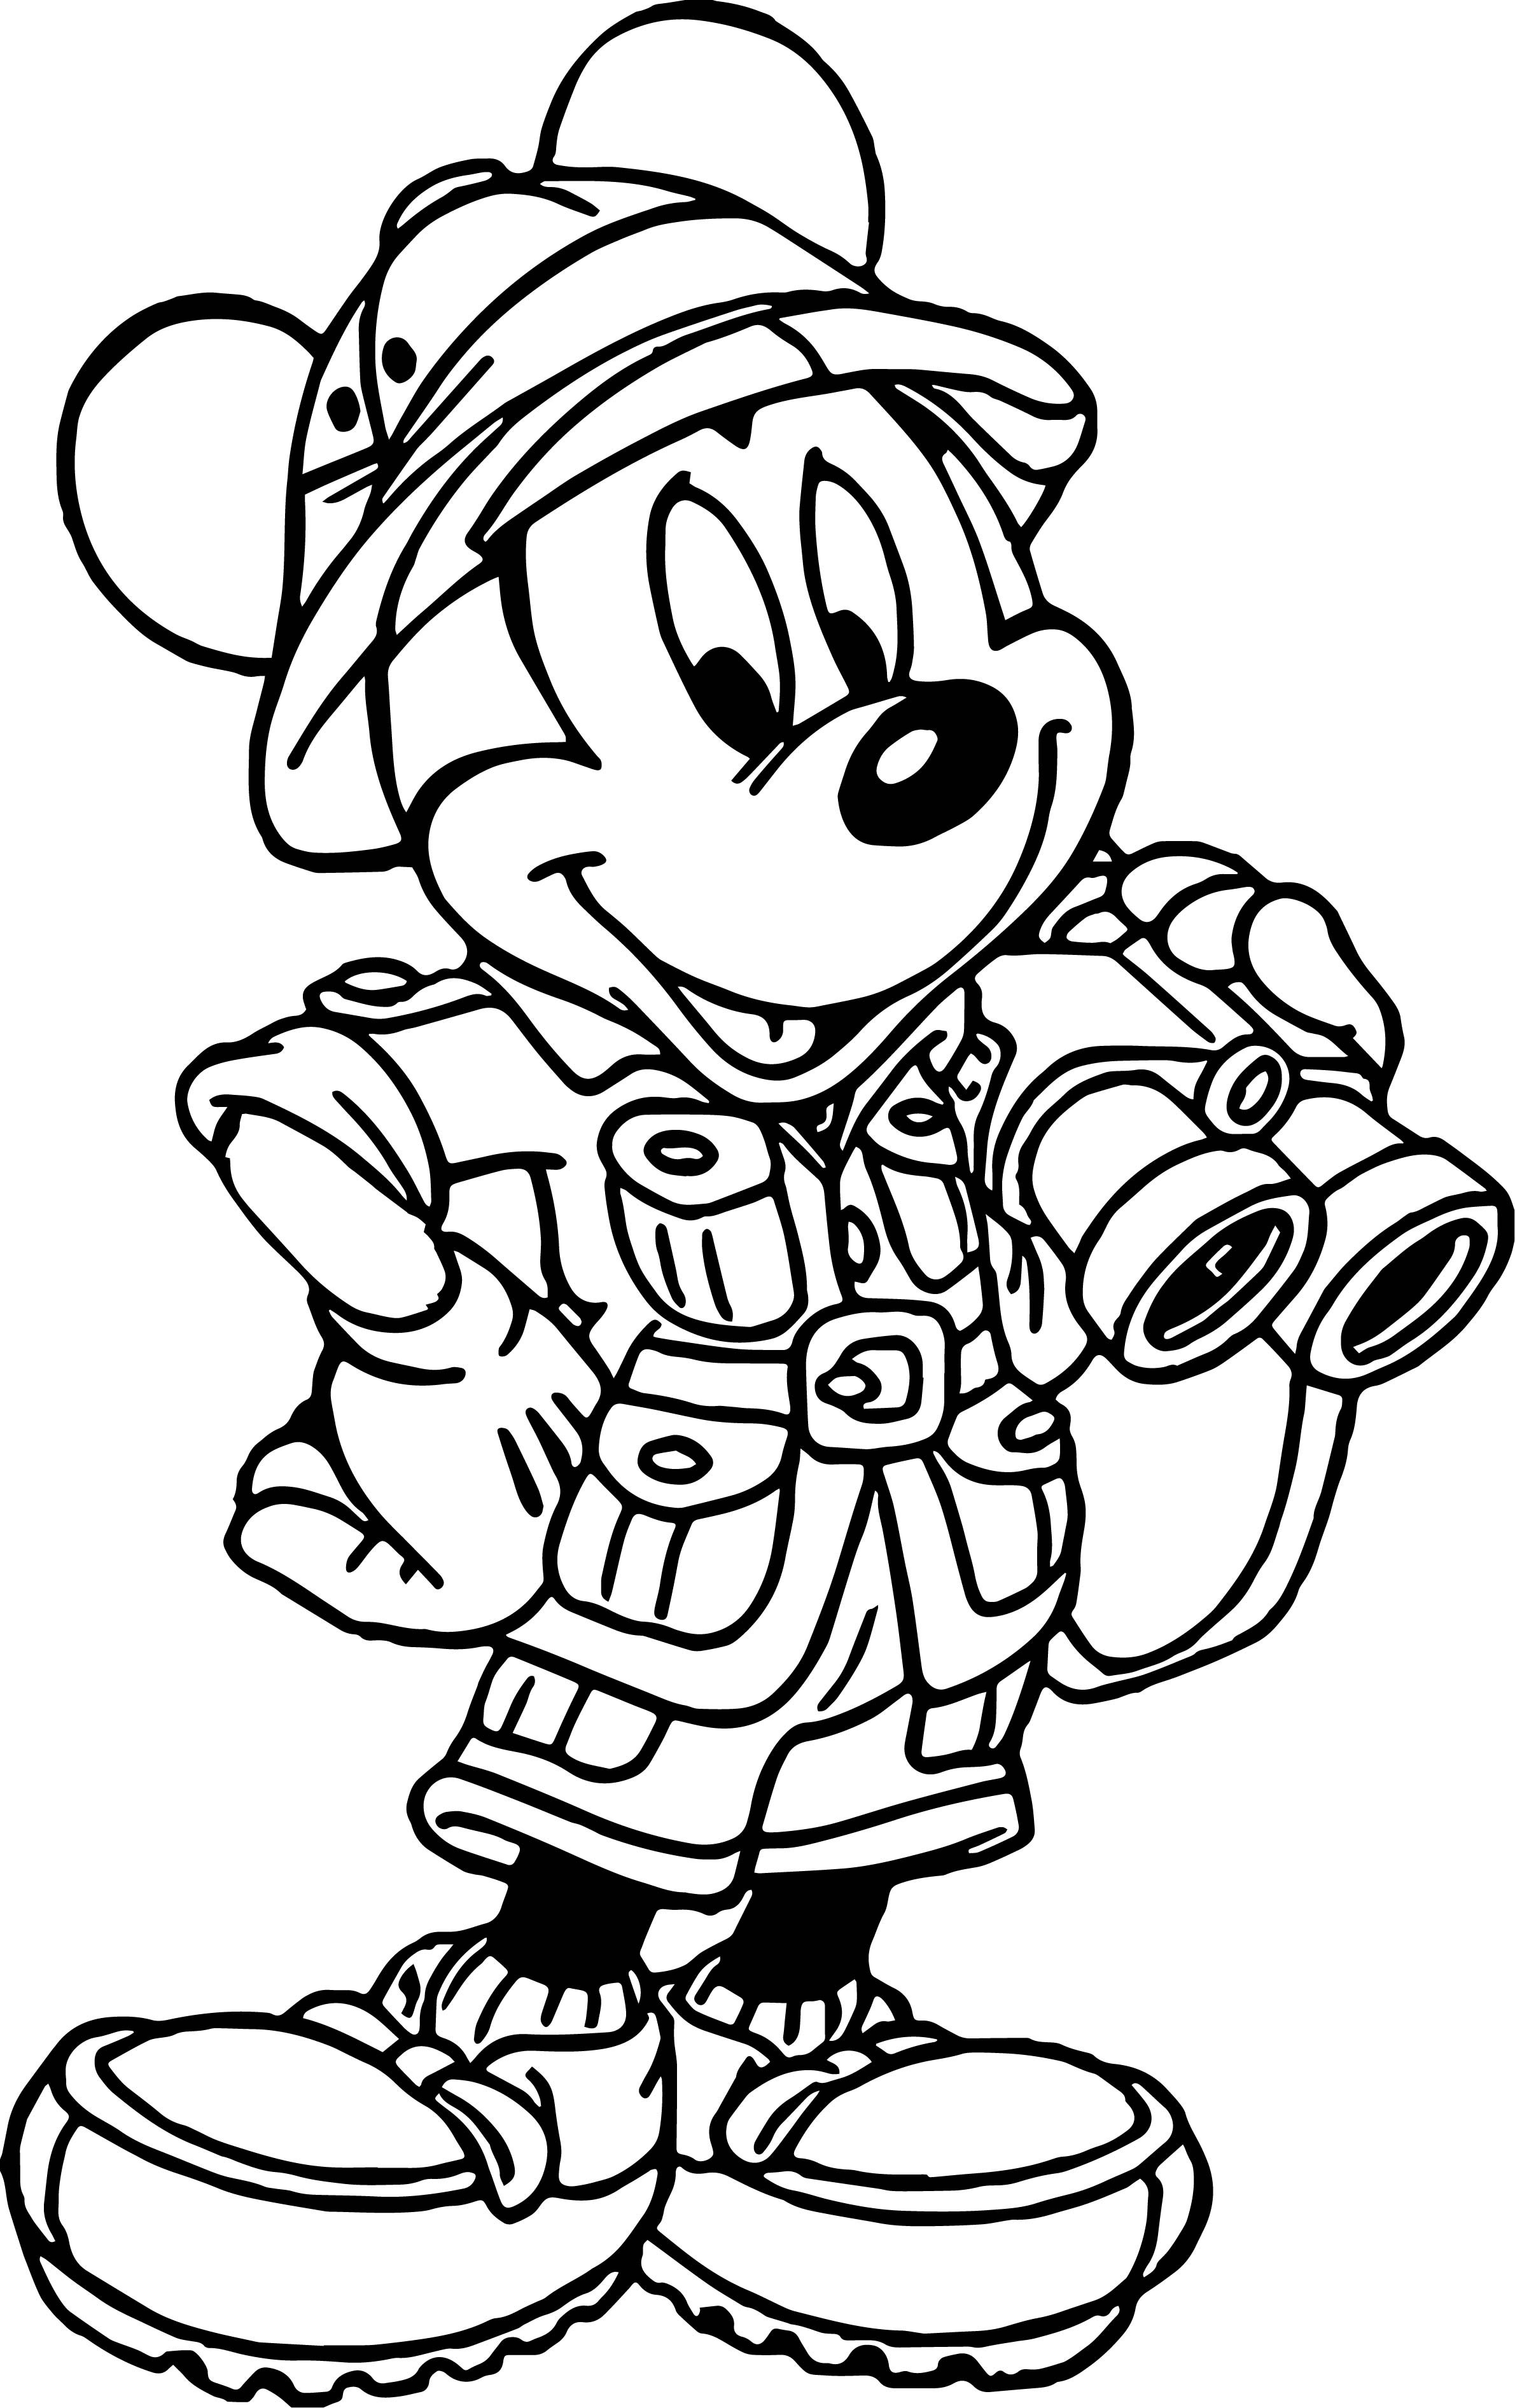 2381x3785 Mickey Mouse Safari Coloring Pages Fresh Mickey Mouse Cartoon